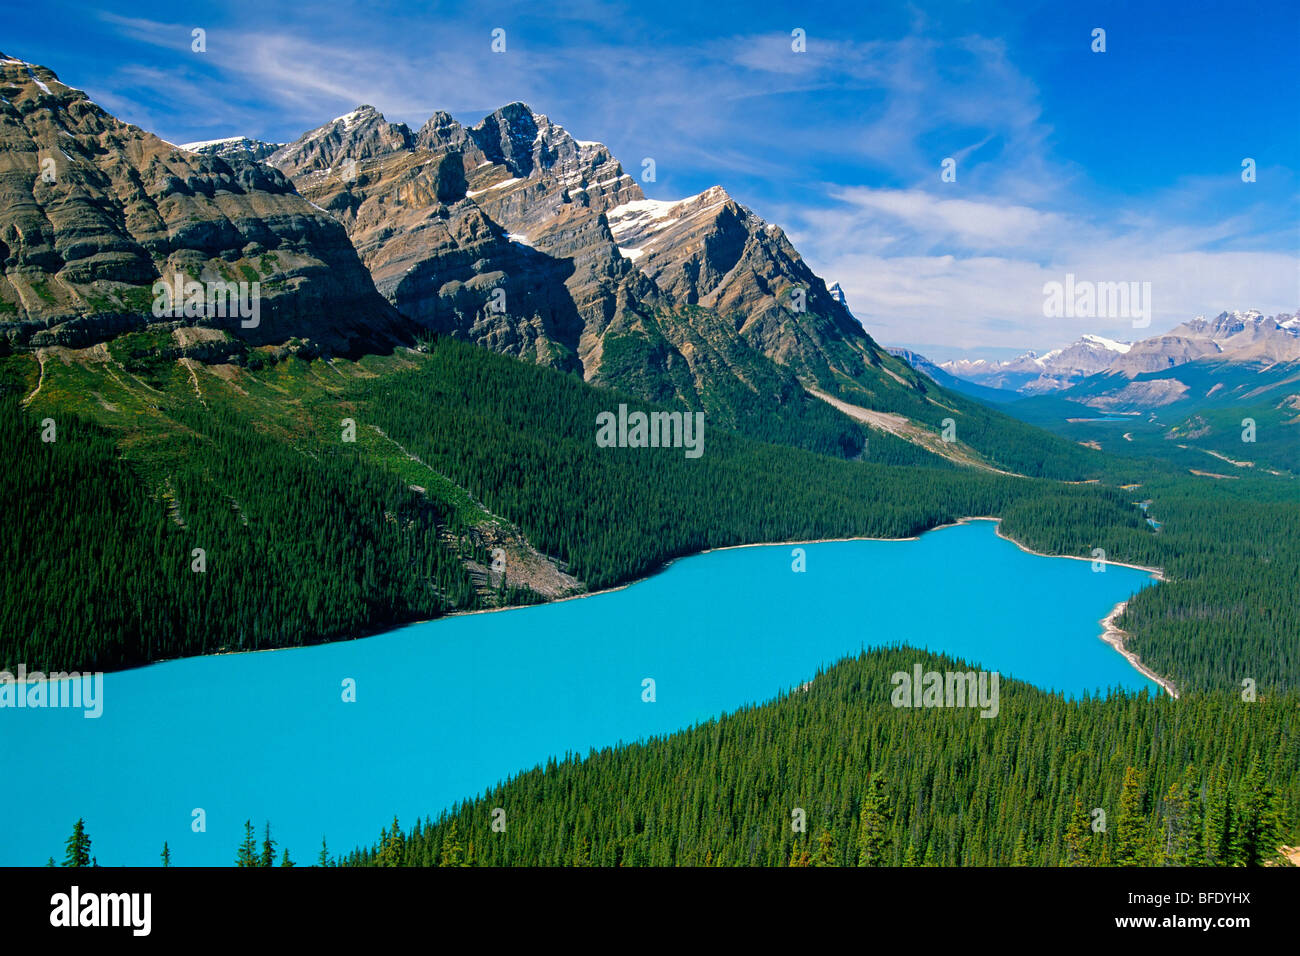 High angle view of Peyto Lake, Icefields Parkway, Banff National Park, Alberta, Canada - Stock Image